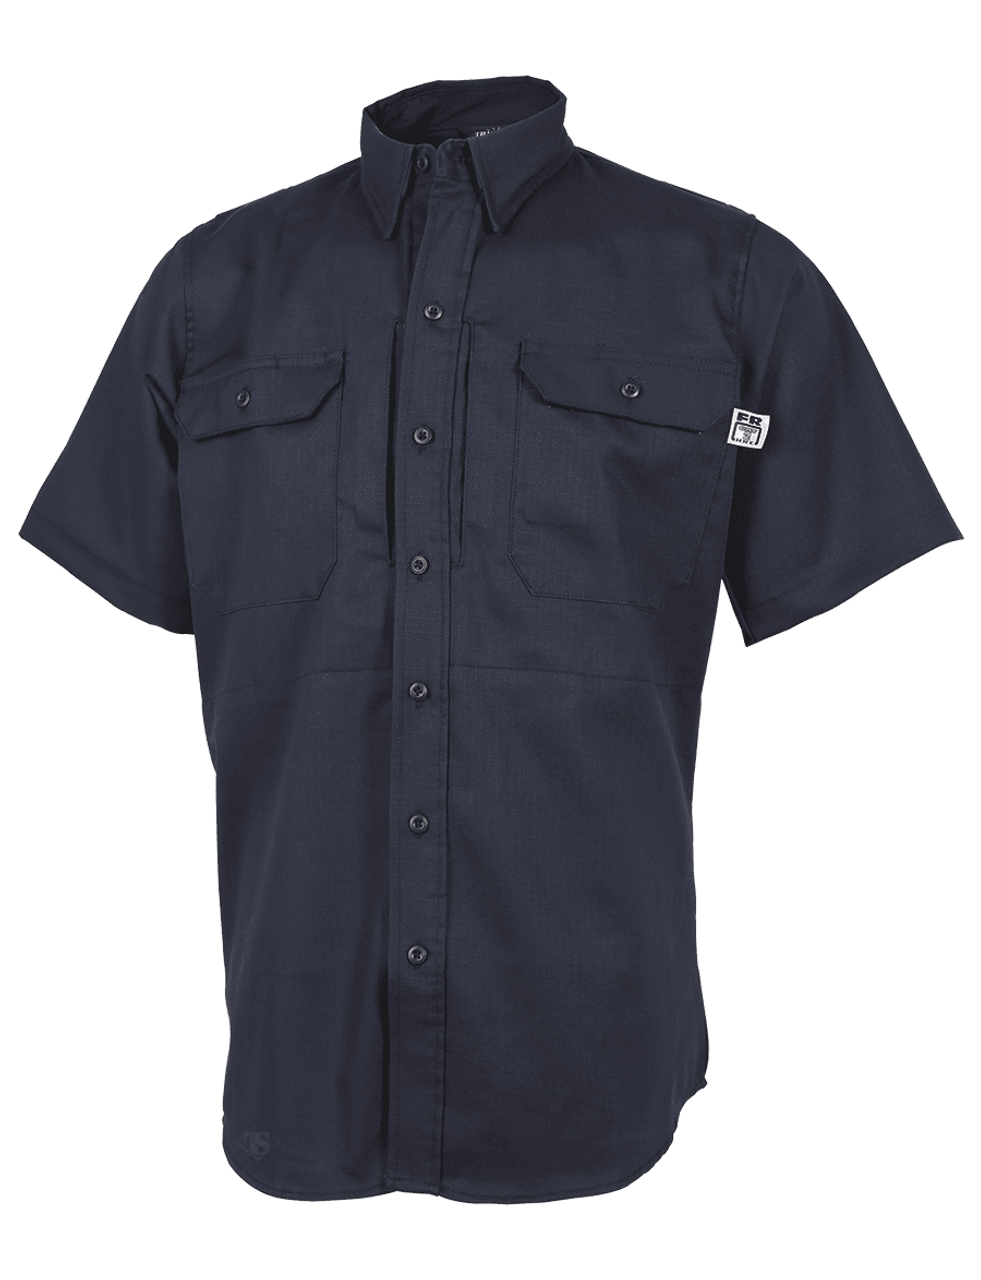 Tru-Spec 1449 XFIRE Short Sleeve Uniform Shirt, 100% Cotton, 2 Chest Pockets, Regular Length, Navy